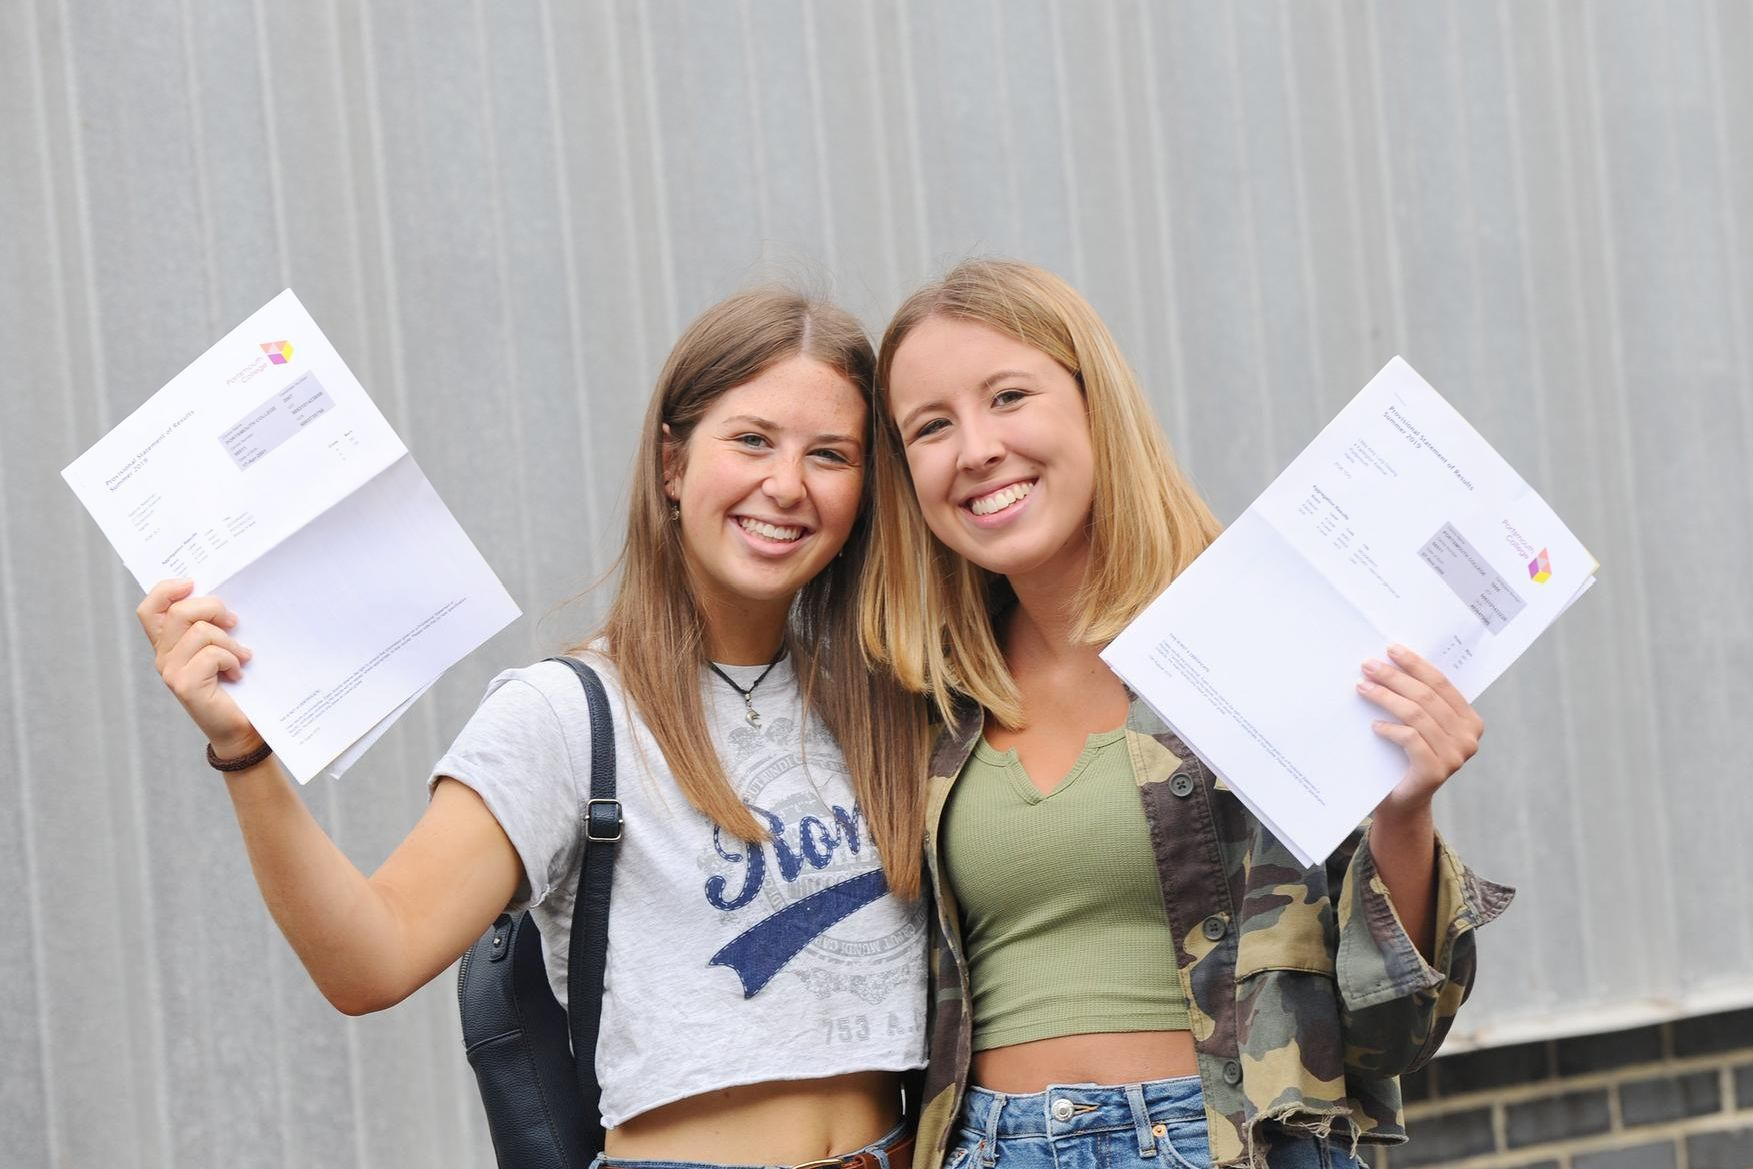 Sabine Newman (18) who got three A's and Libby Gissing (18) who got two A's and one A*. Picture: Sarah Standing (150819-5484)